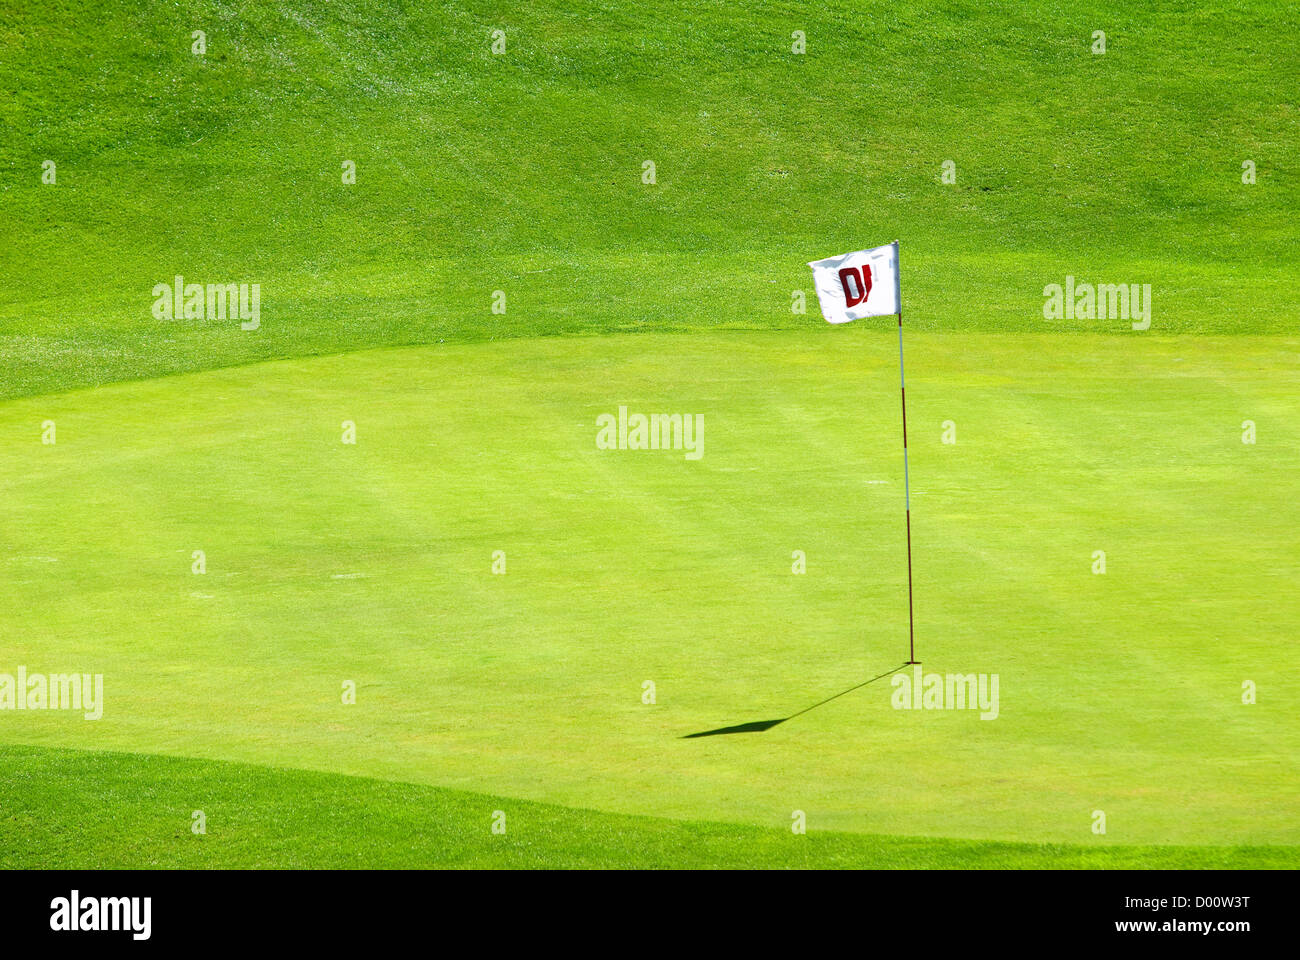 green, golf course - Stock Image